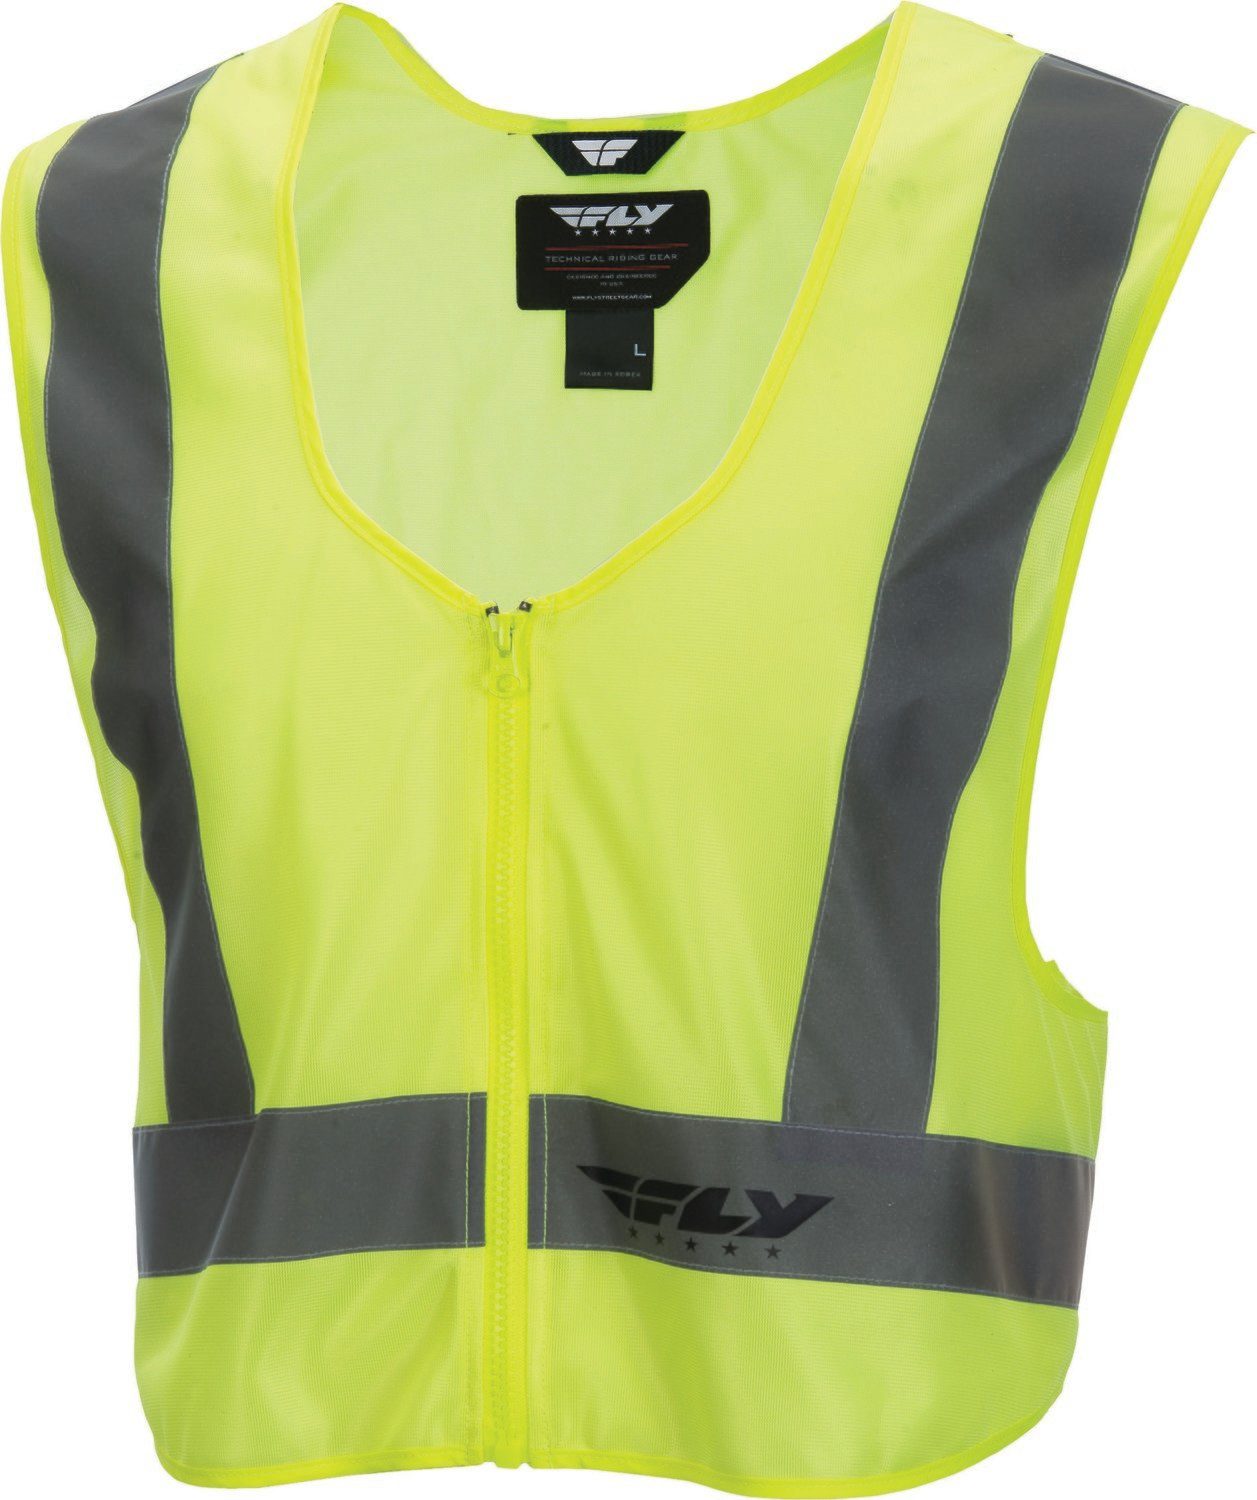 Yellow Safety Vest Hi visability